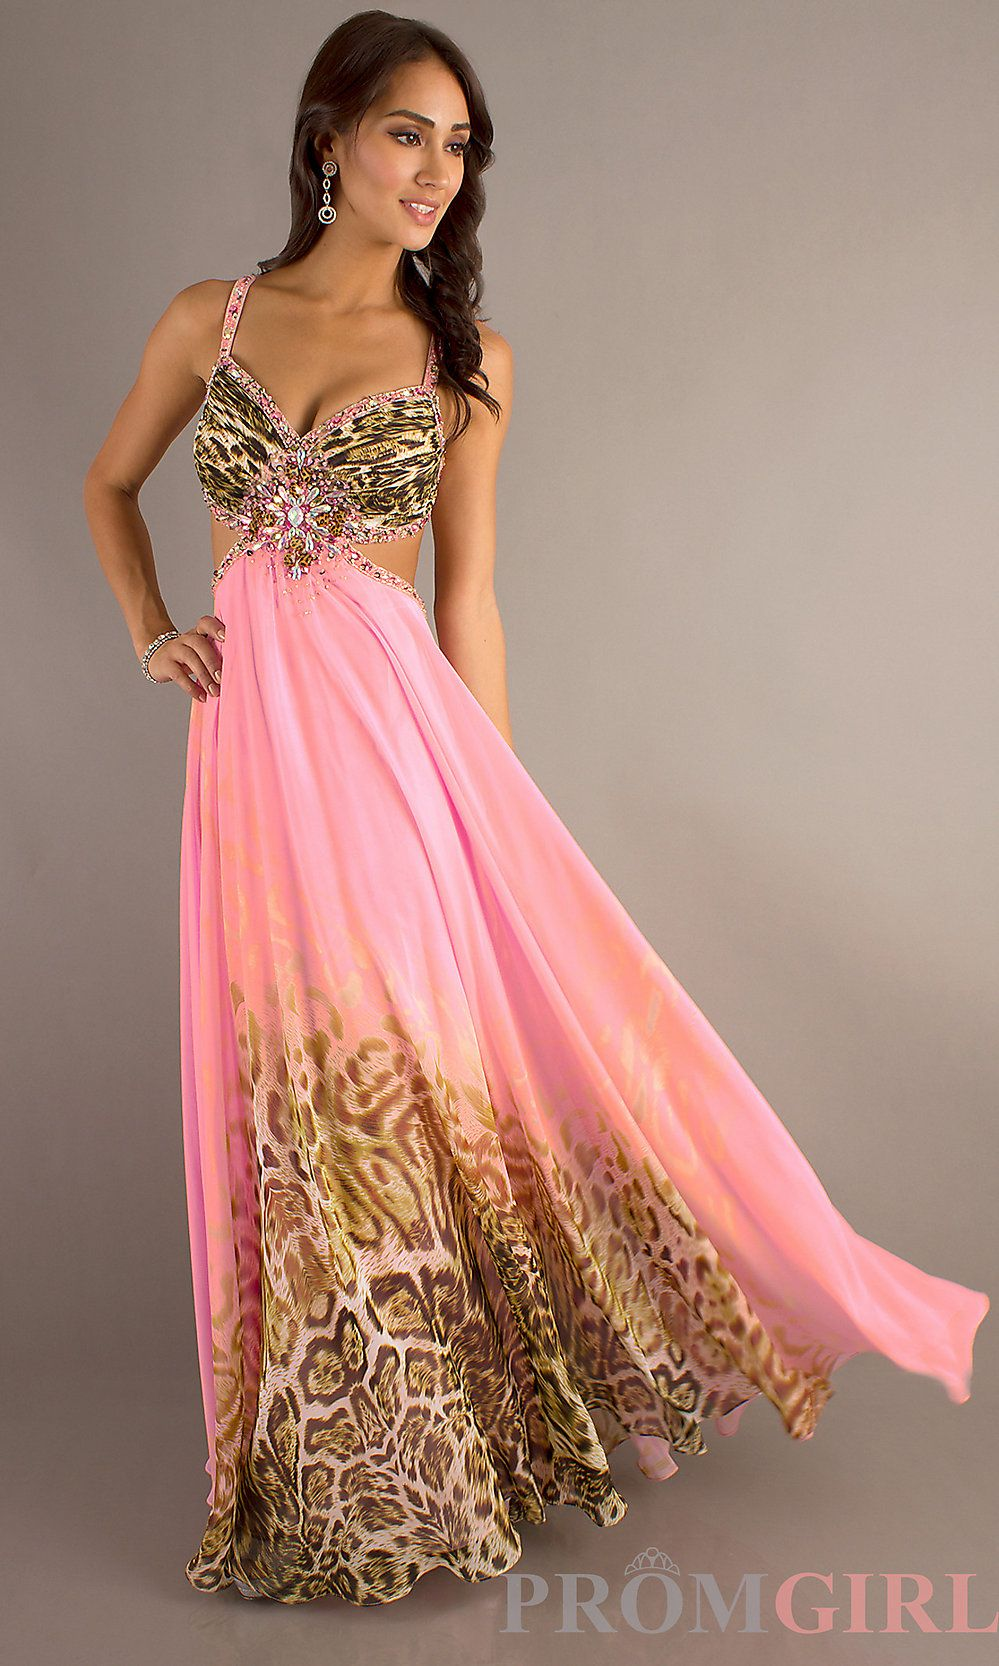 17 Best images about Prom on Pinterest | Animal print prom dresses ...